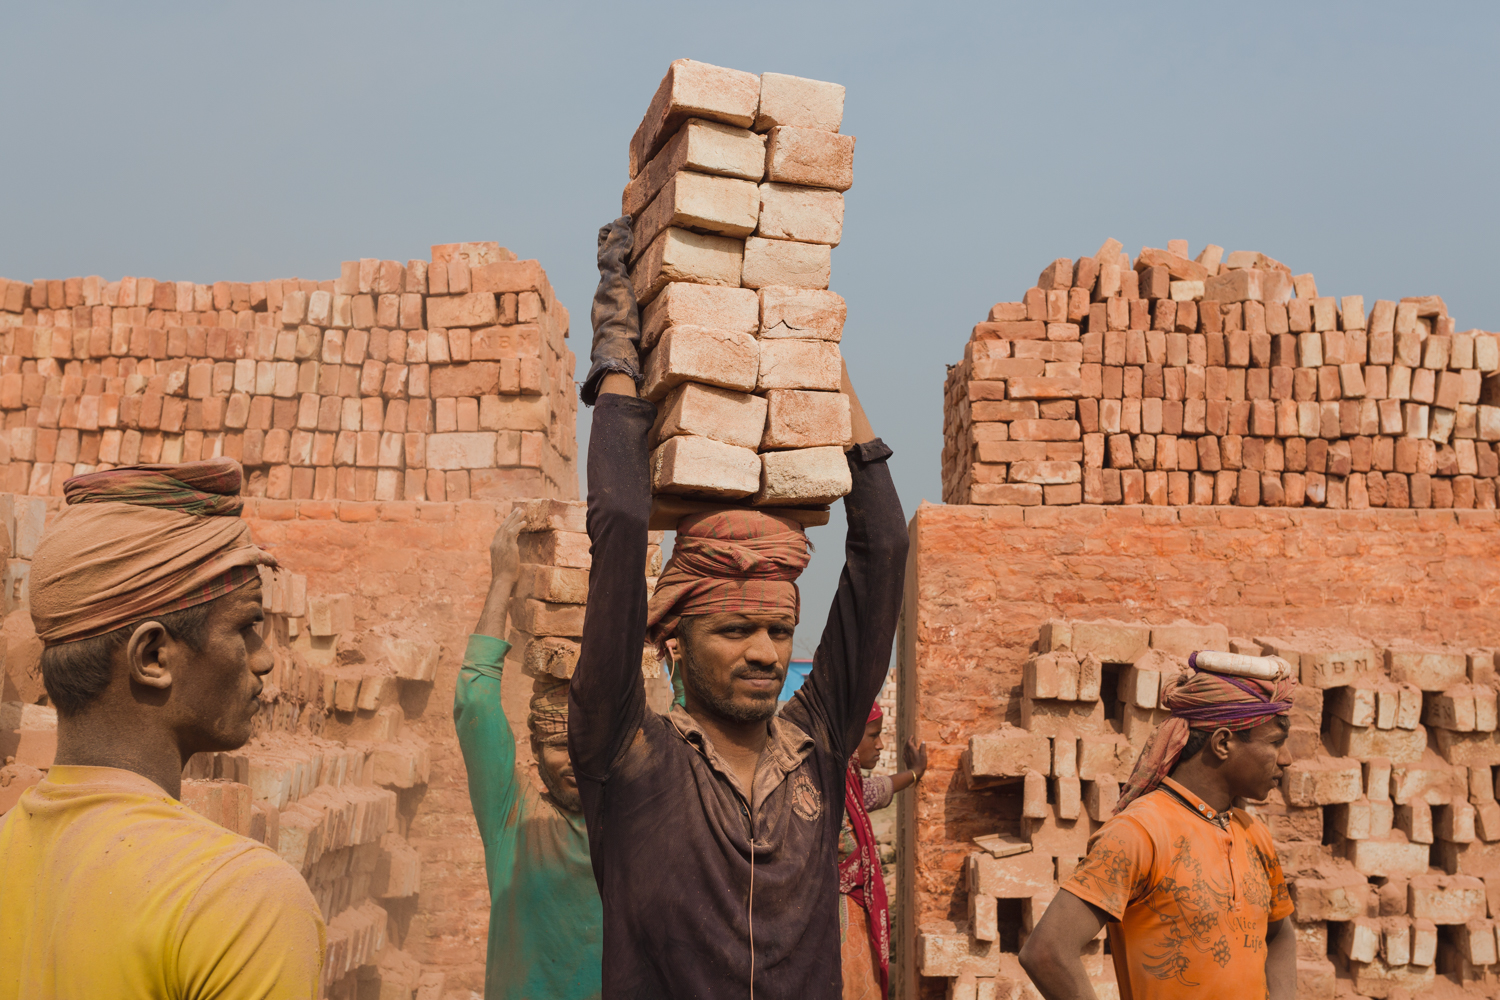 A worker covered by brick dust transporting bricks in Chittagong, Bangladesh.